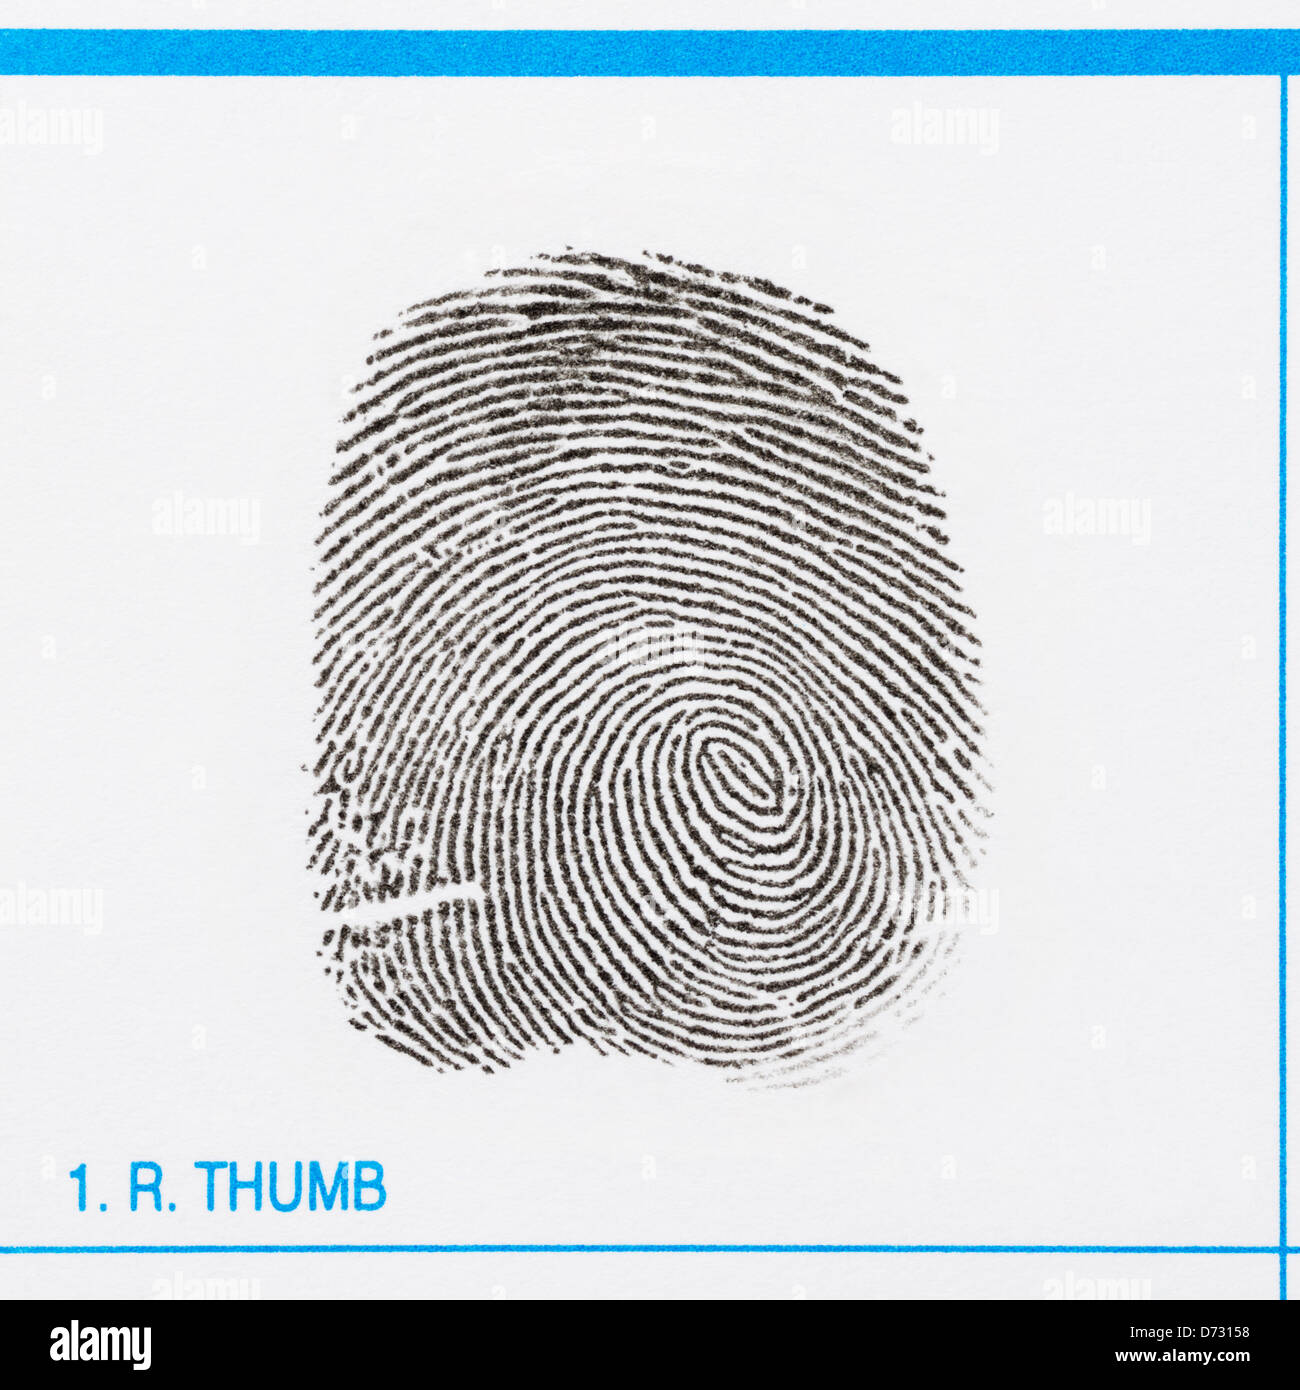 Thumbprint of a right thumb showing a whorl and various minutiae - Stock Image